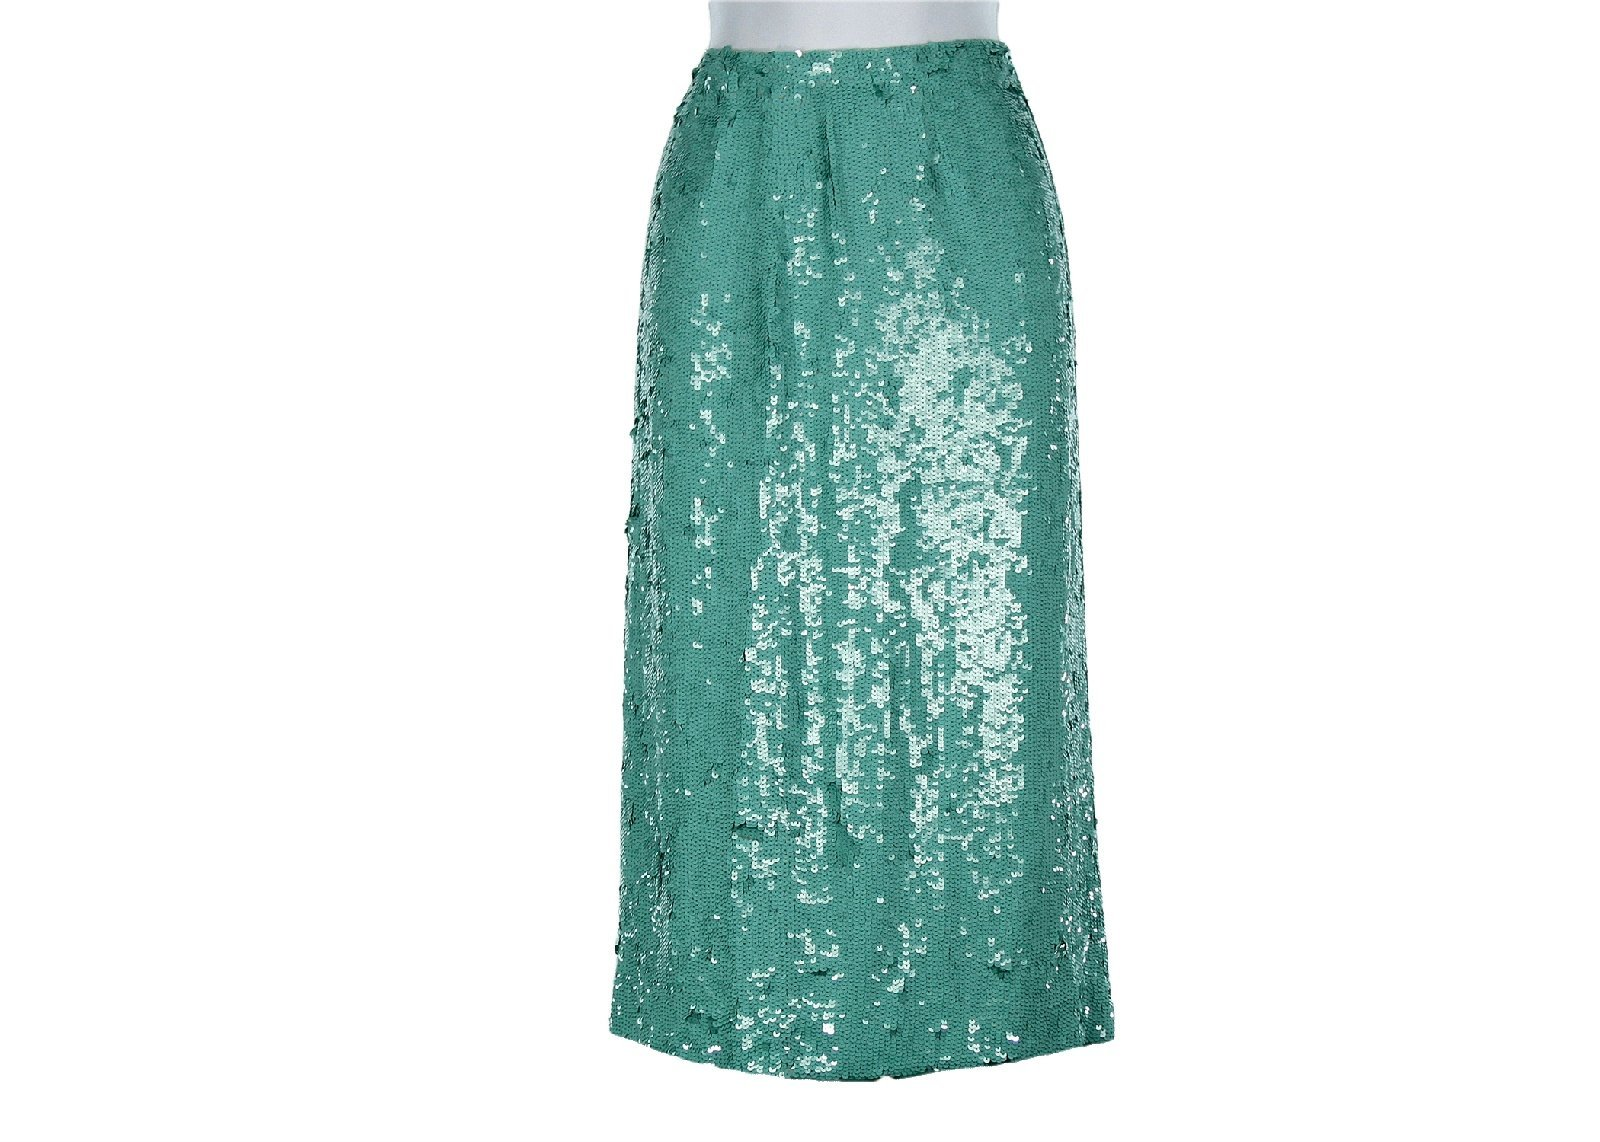 J Crew Collection No. 2 Pencil Skirt In Sequins Sz 2 Style# 52186 Soft Mint by Madewell